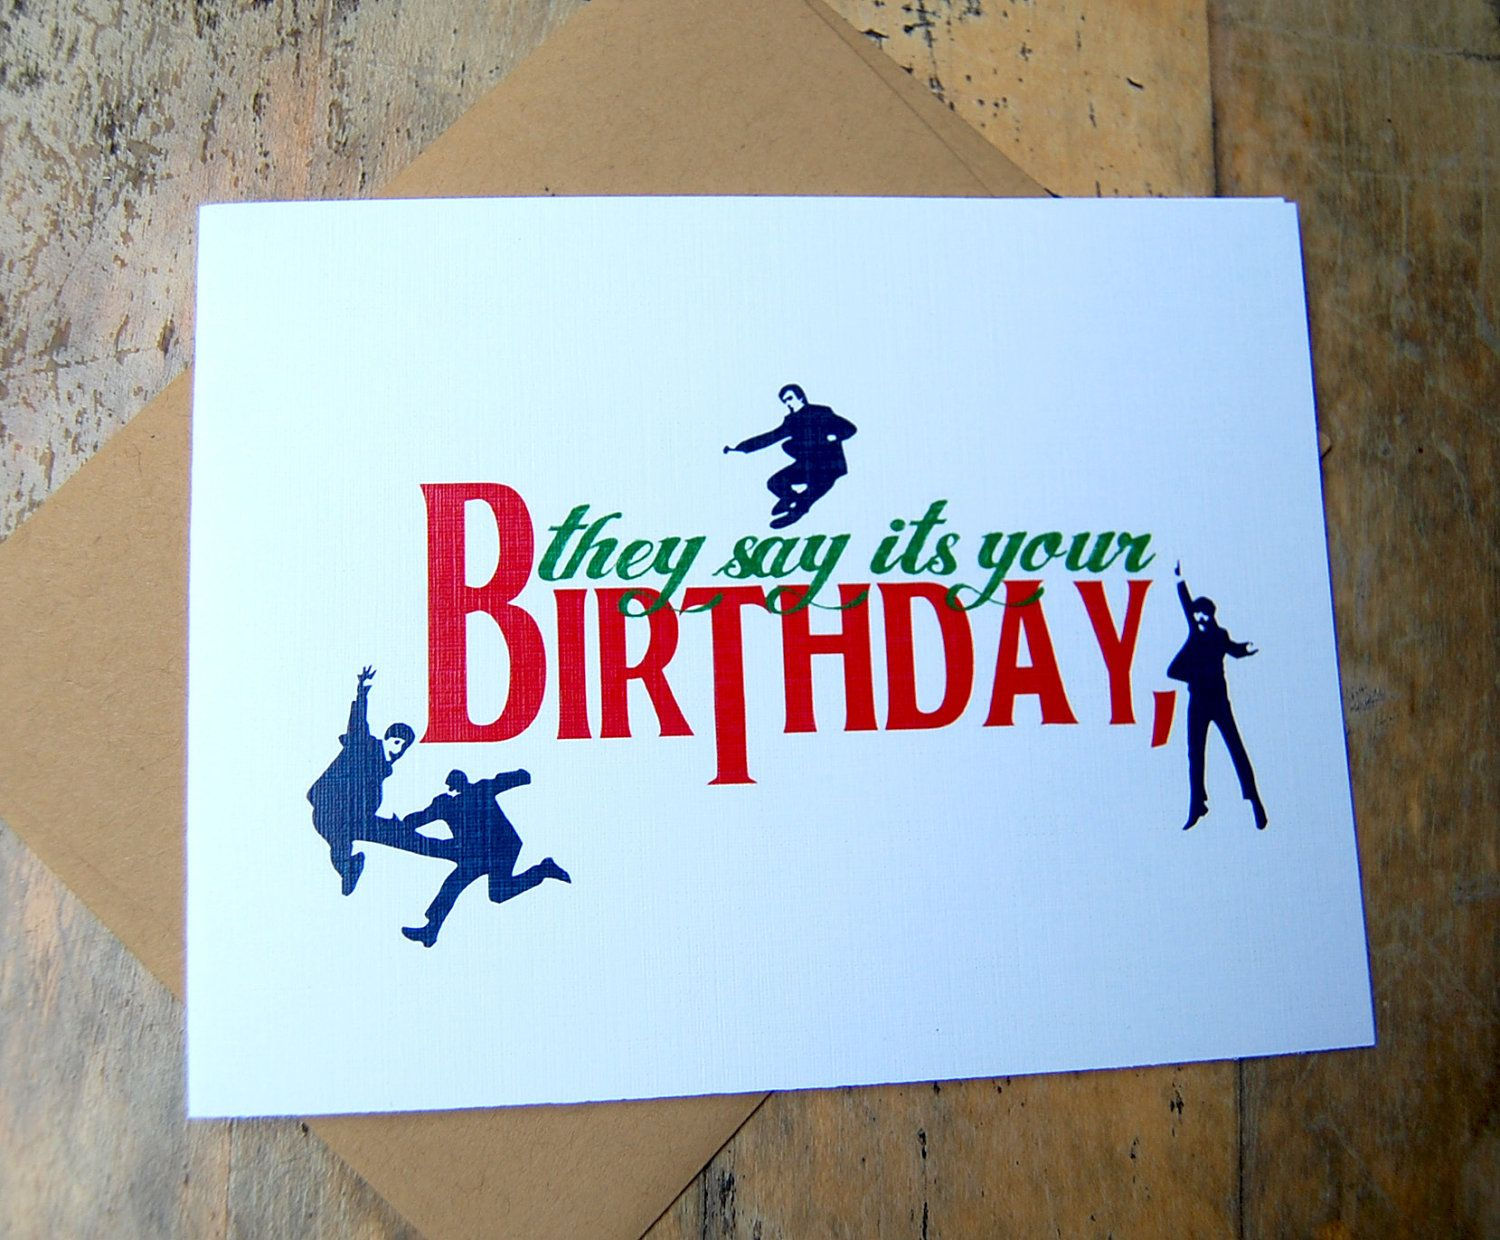 beatles birthday card ; 5d30e21e17410f4bf5ee24f71619ce13